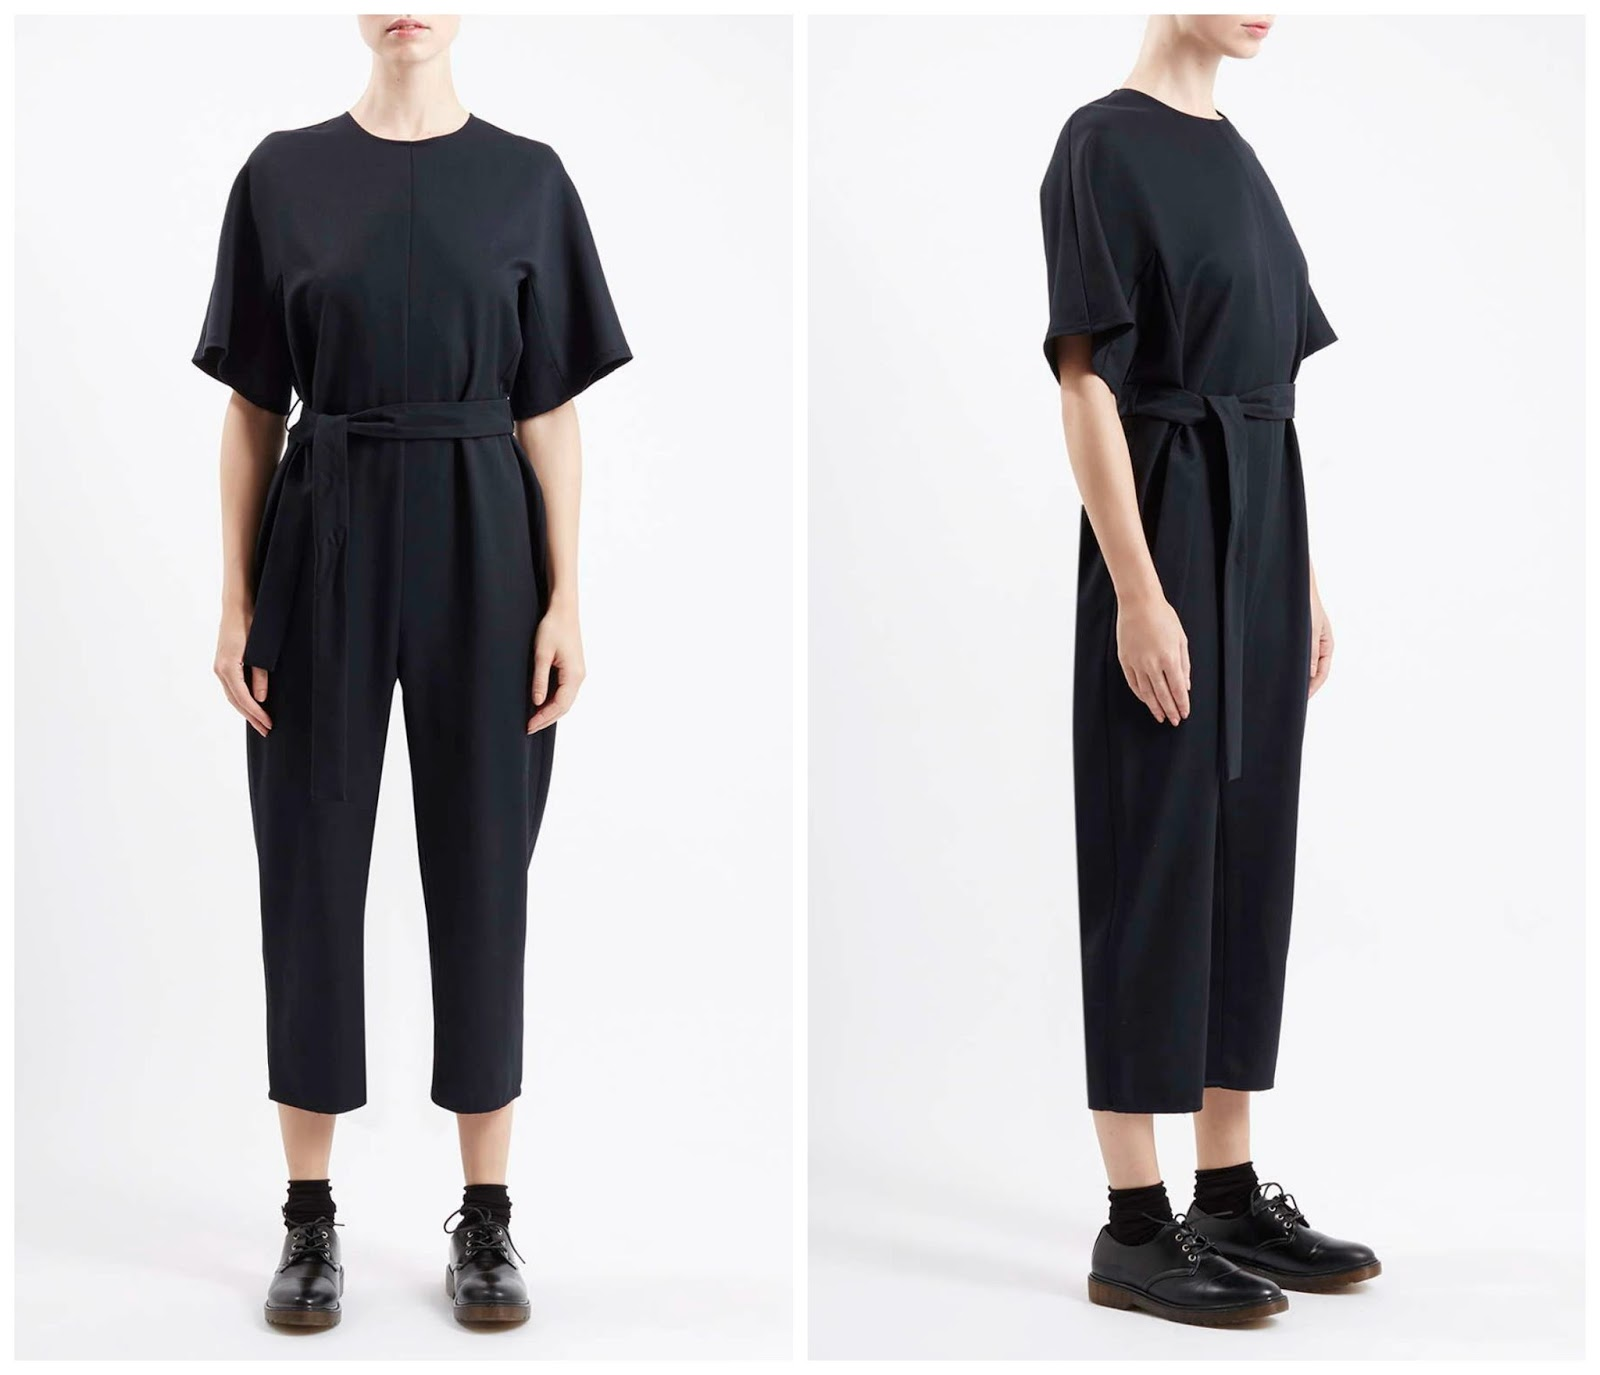 9296ef9dc4a6 Style Trunk   Lust of the Week  Topshop Cropped Jumpsuit